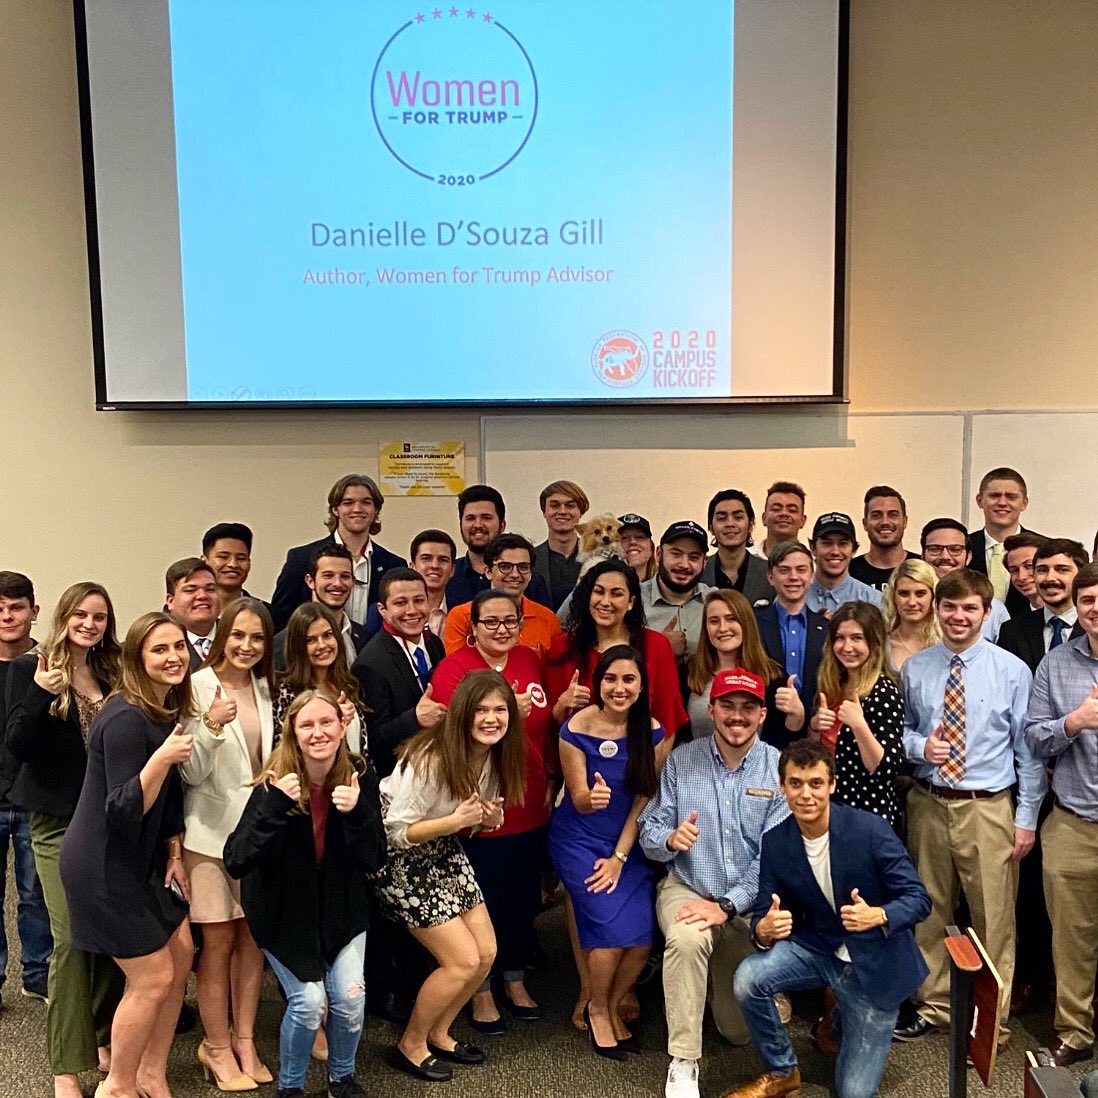 Amazing speaking to College Republicans in Florida today about my story of becoming an empowered conservative woman and the importance of speaking up on the college campus and fighting the left's attack on our culture and values. We are the future🐘🇺🇸@CRNC @GOP